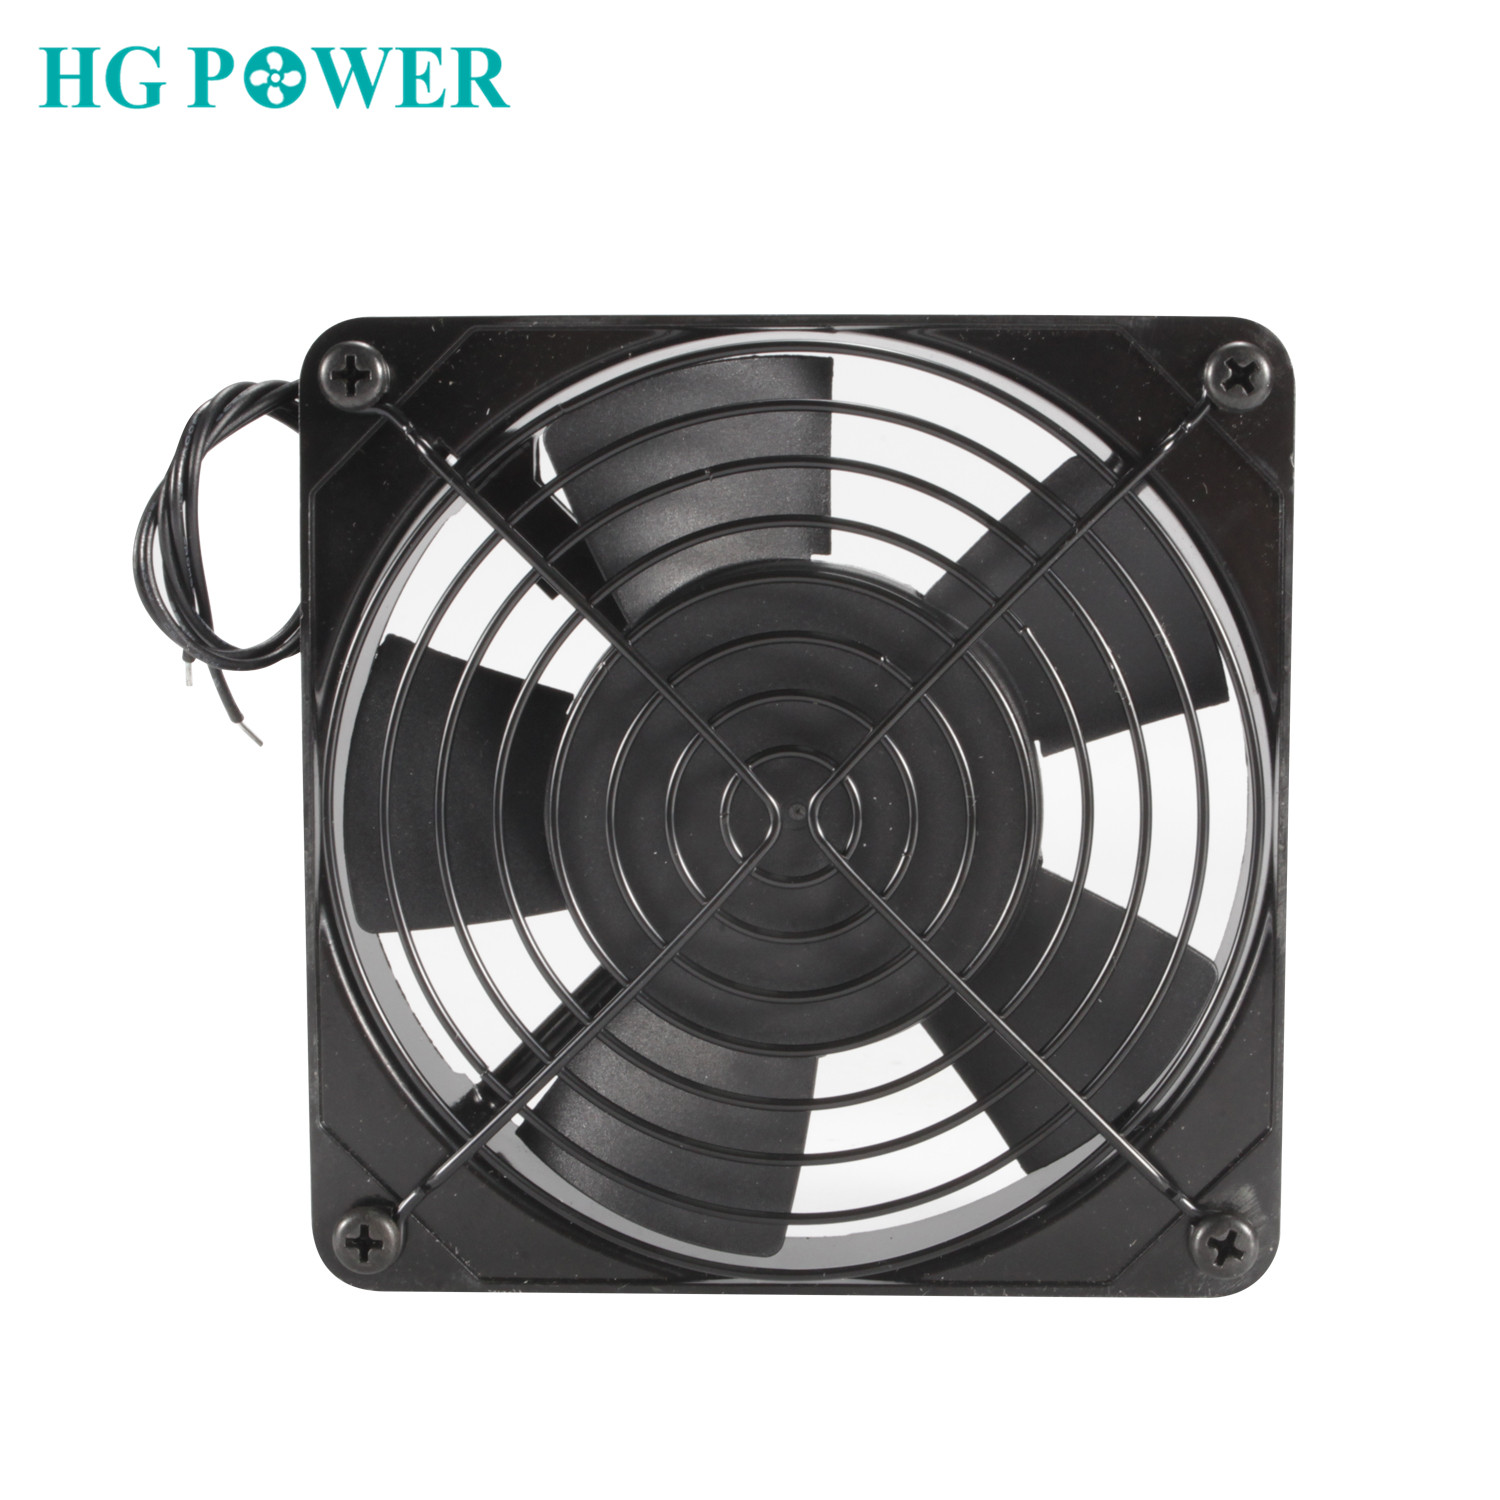 Black Metal Cooling Fan 220V 110V AC Fan CPU Cooler Air Extractor Home Exhaust Fan For Kitchen Bathroom Ventilation 120x120x25mm